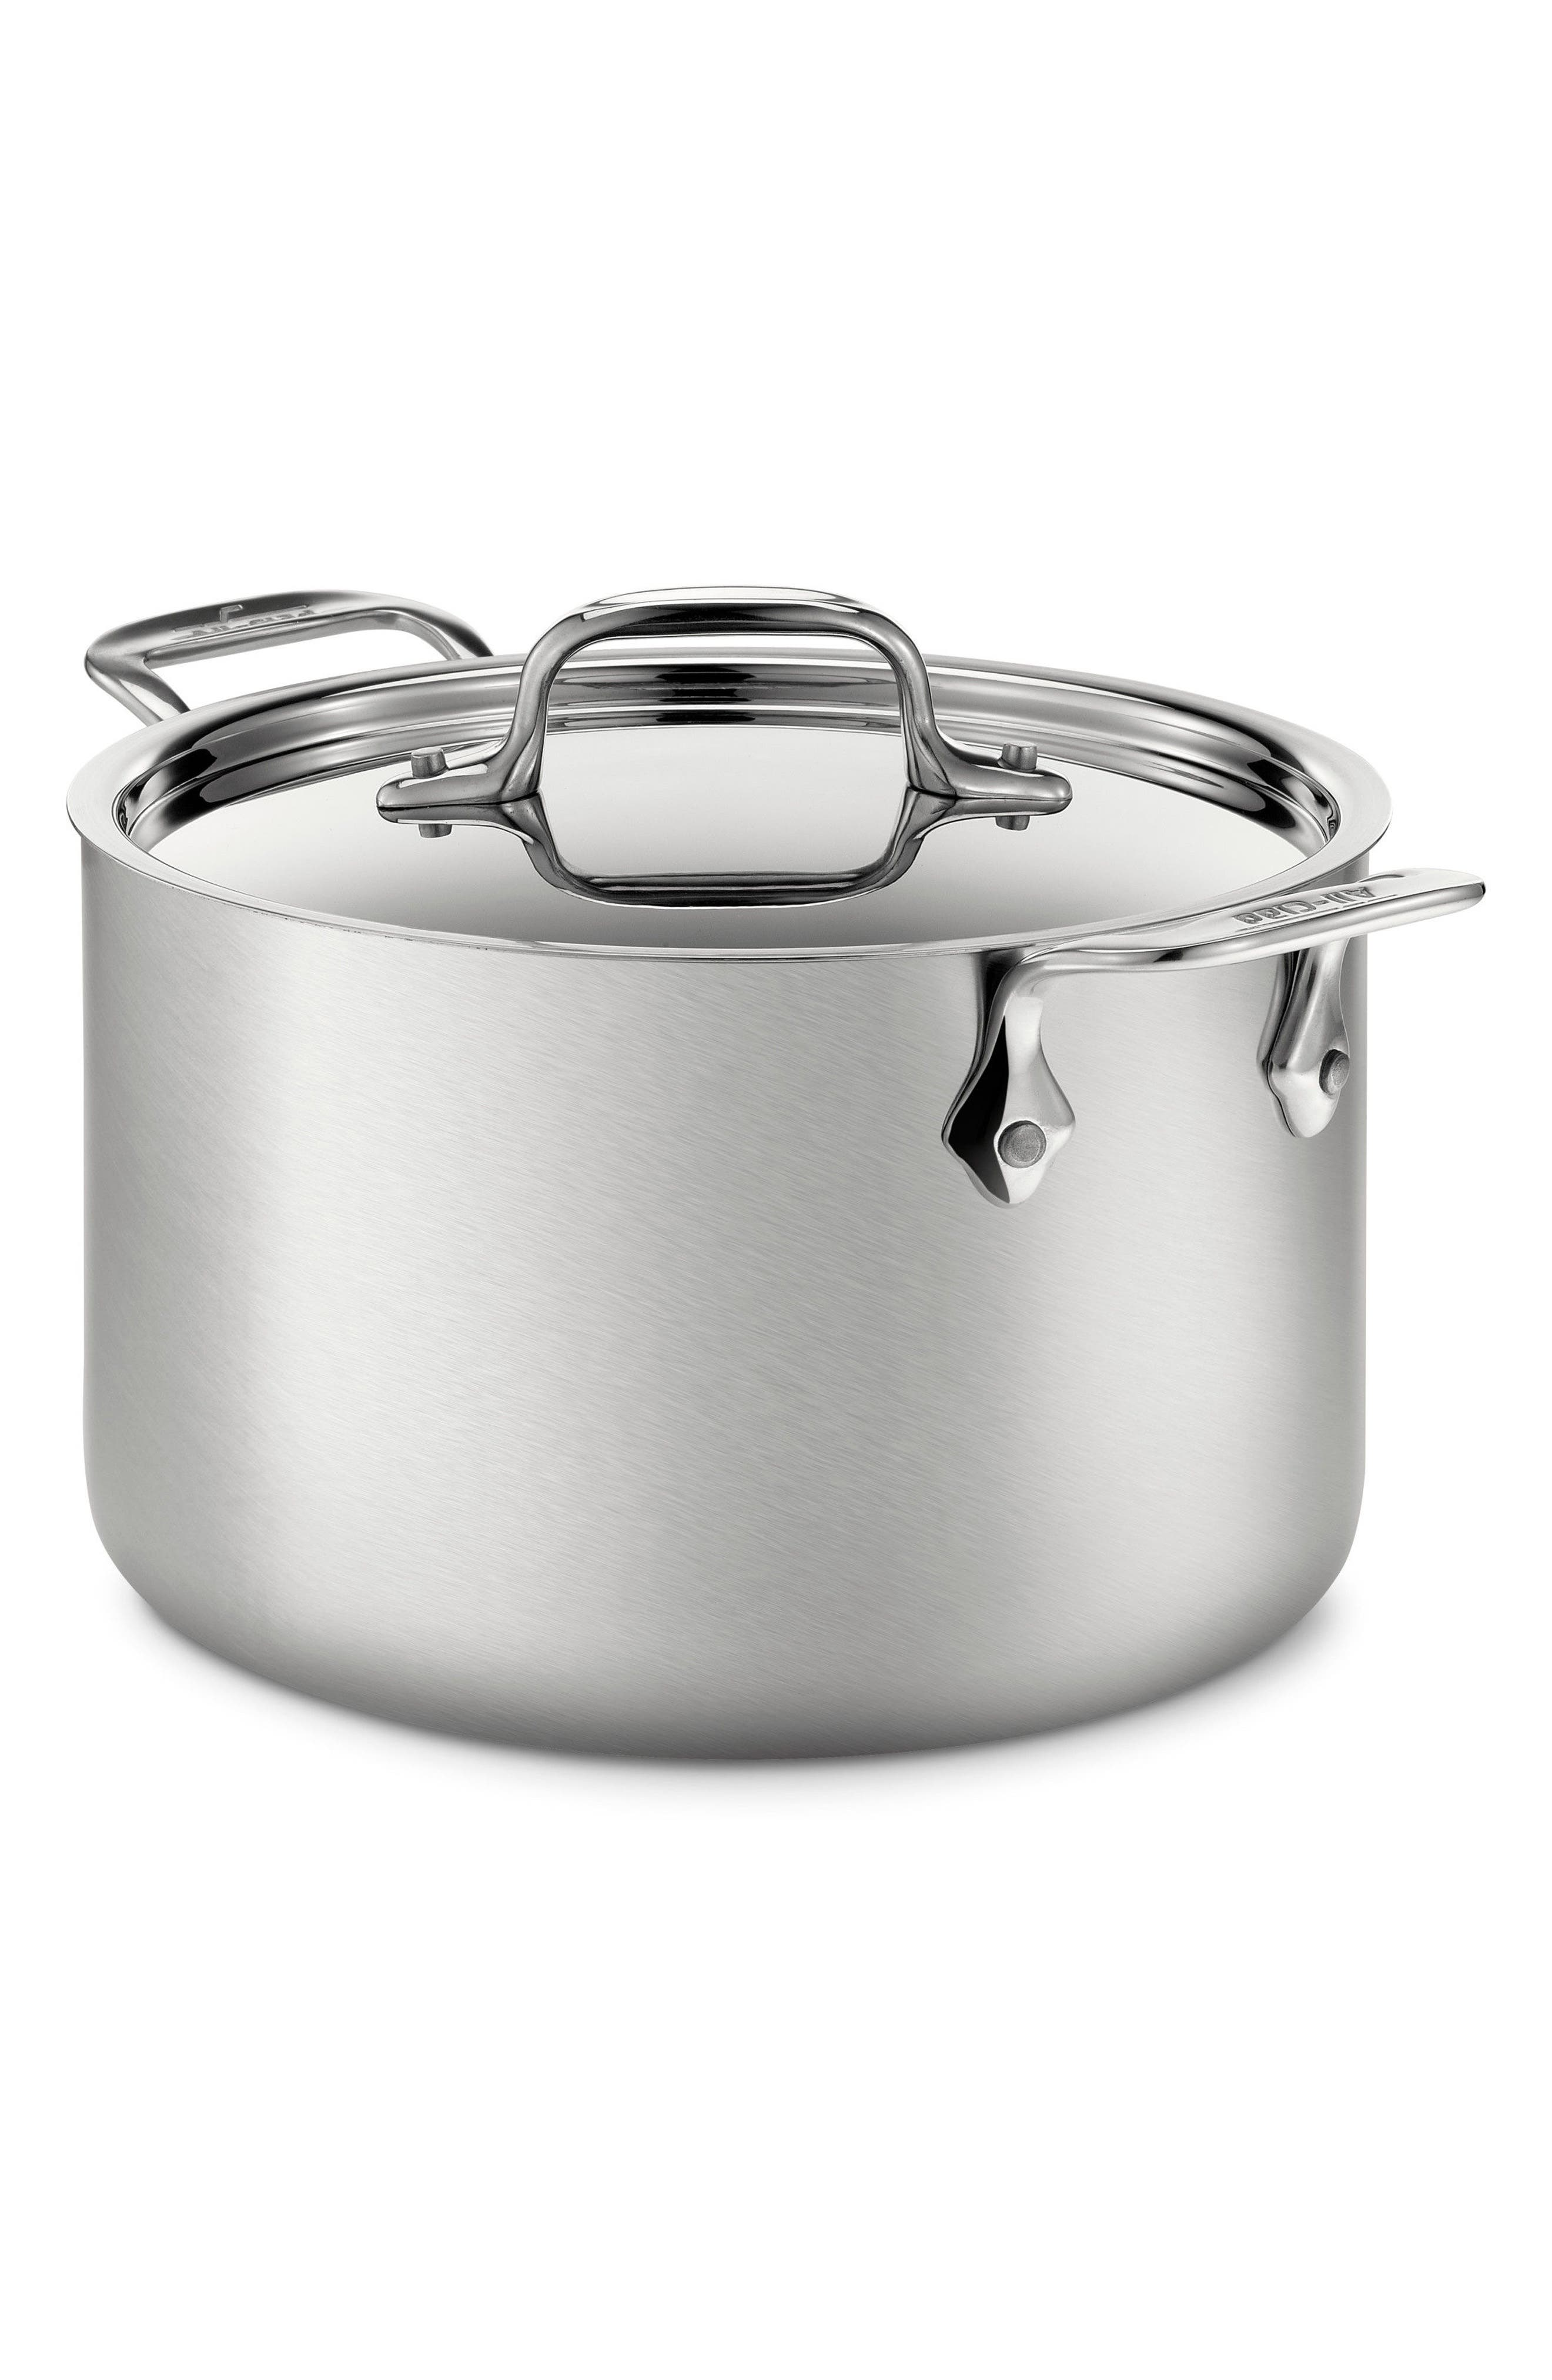 Alternate Image 1 Selected - All-Clad 4-Quart Stainless Steel Soup Pot